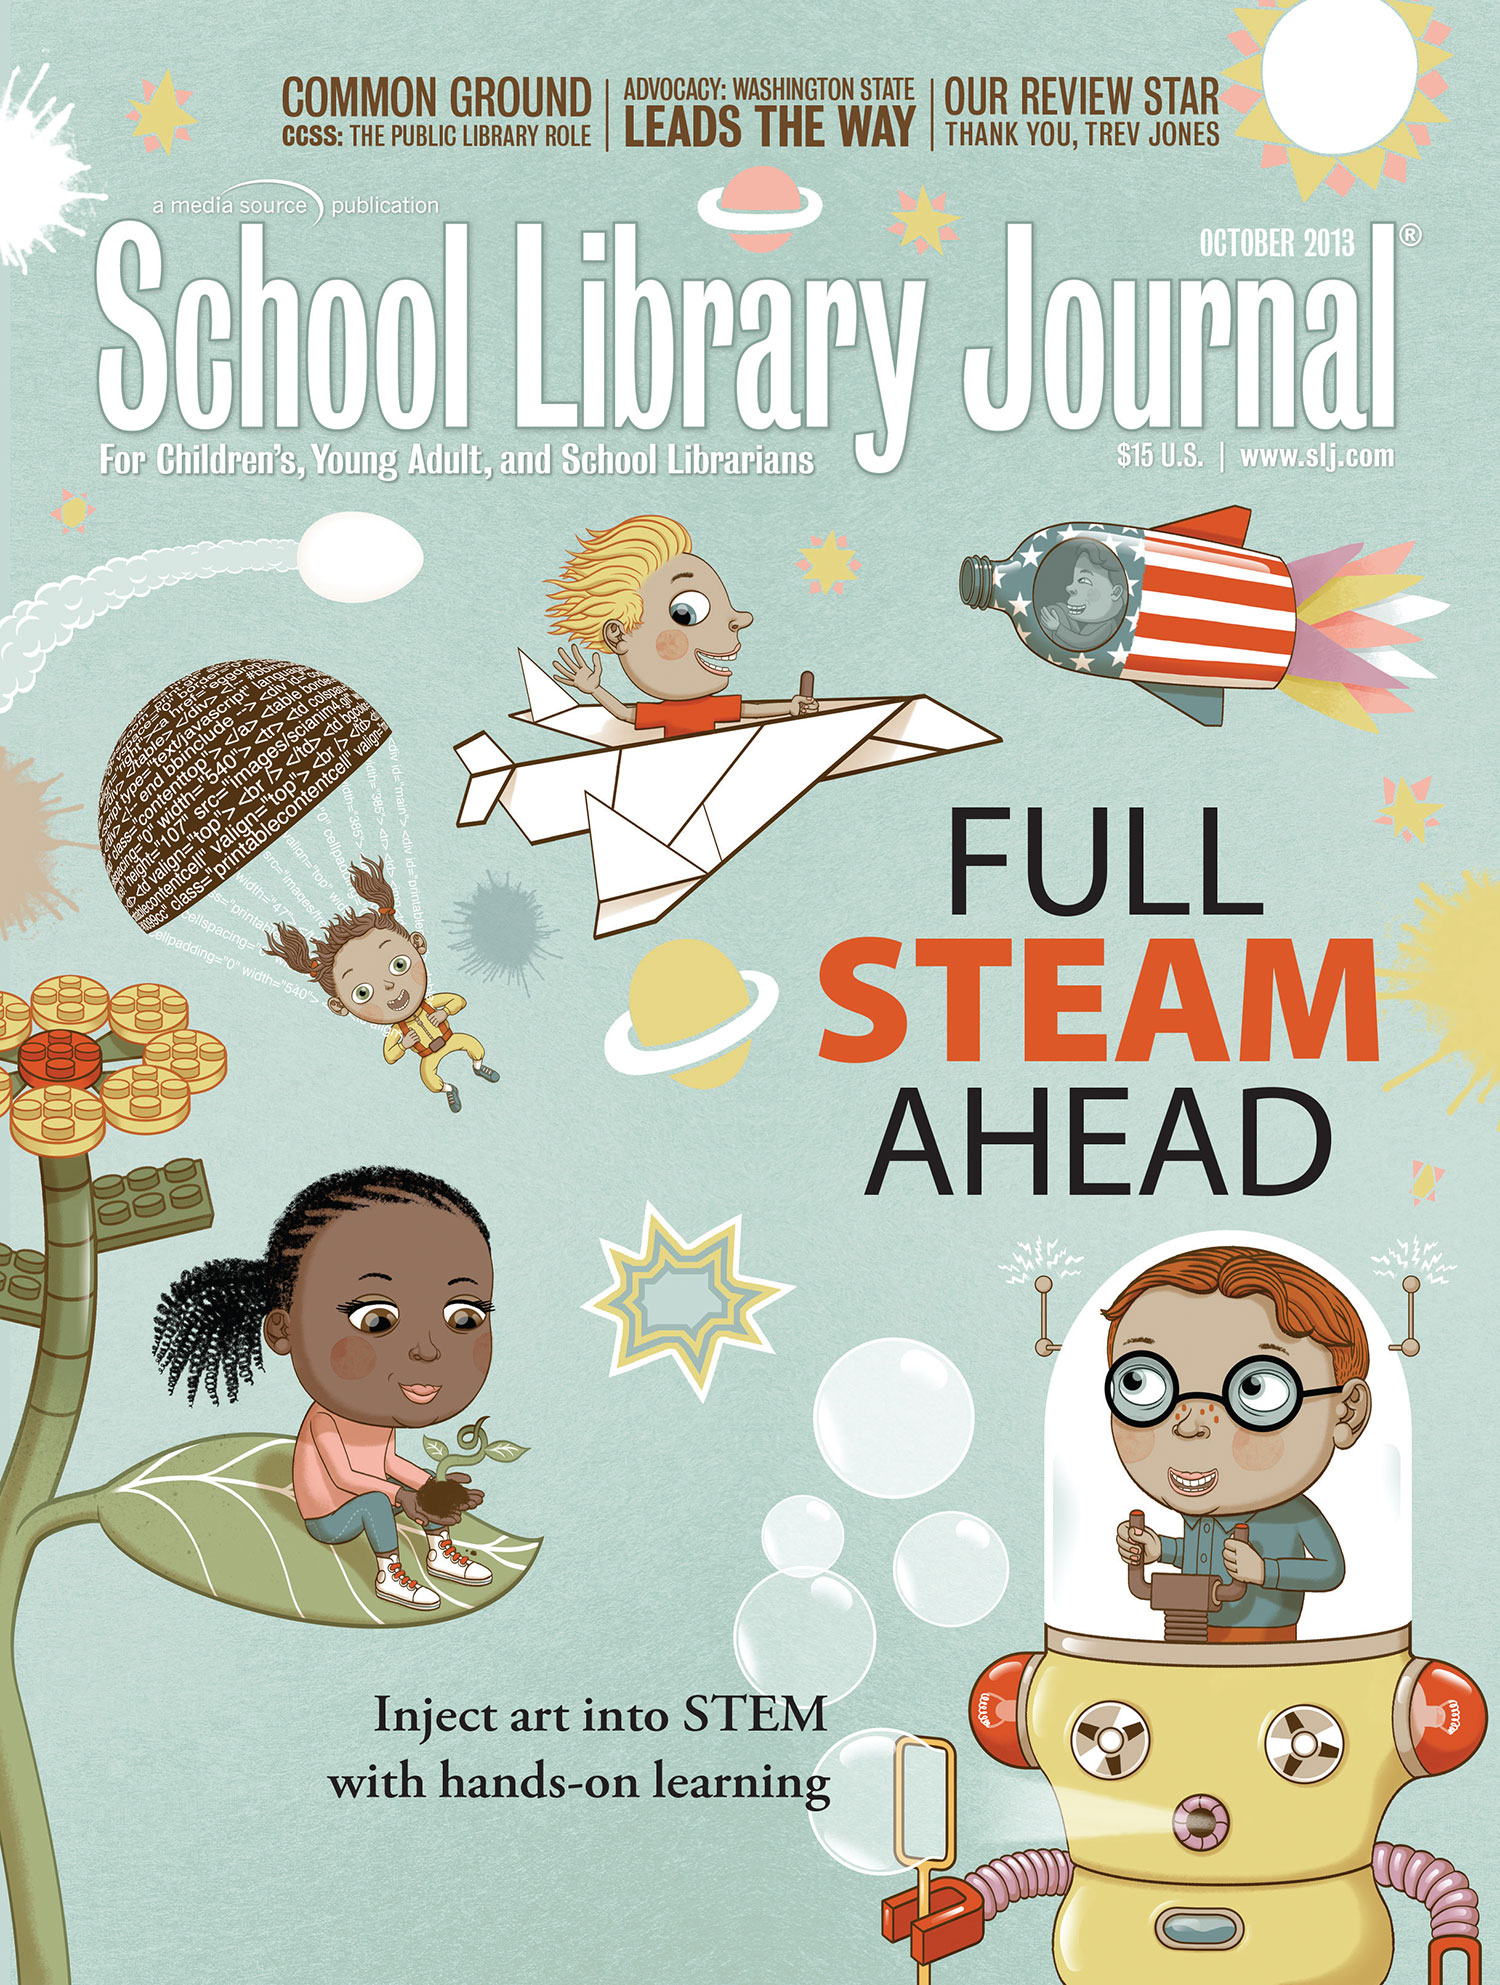 - STEAM - Science, Technology, Engineering, Art & Math. Instead of teaching subjects in isolation, an approach that merges these various methodologies within a single lesson or unit can be a more meaningful and effective way for kids to learn. It's about seeing subjects from a variety of perspectives, resulting in new insights and connecting the dots. In other words… fun.